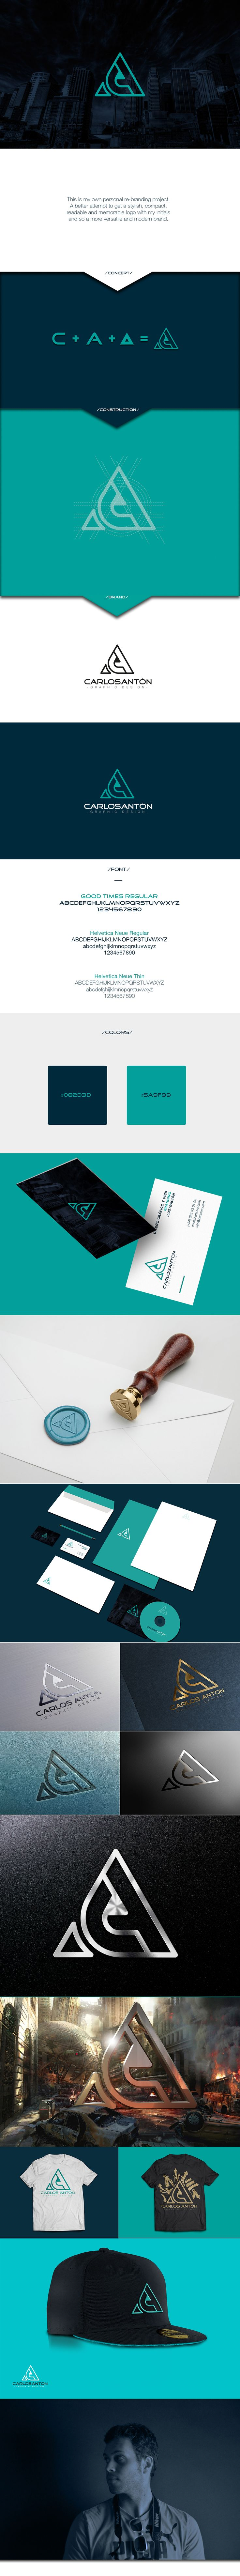 Personal Branding - Carlos Antón on Behance